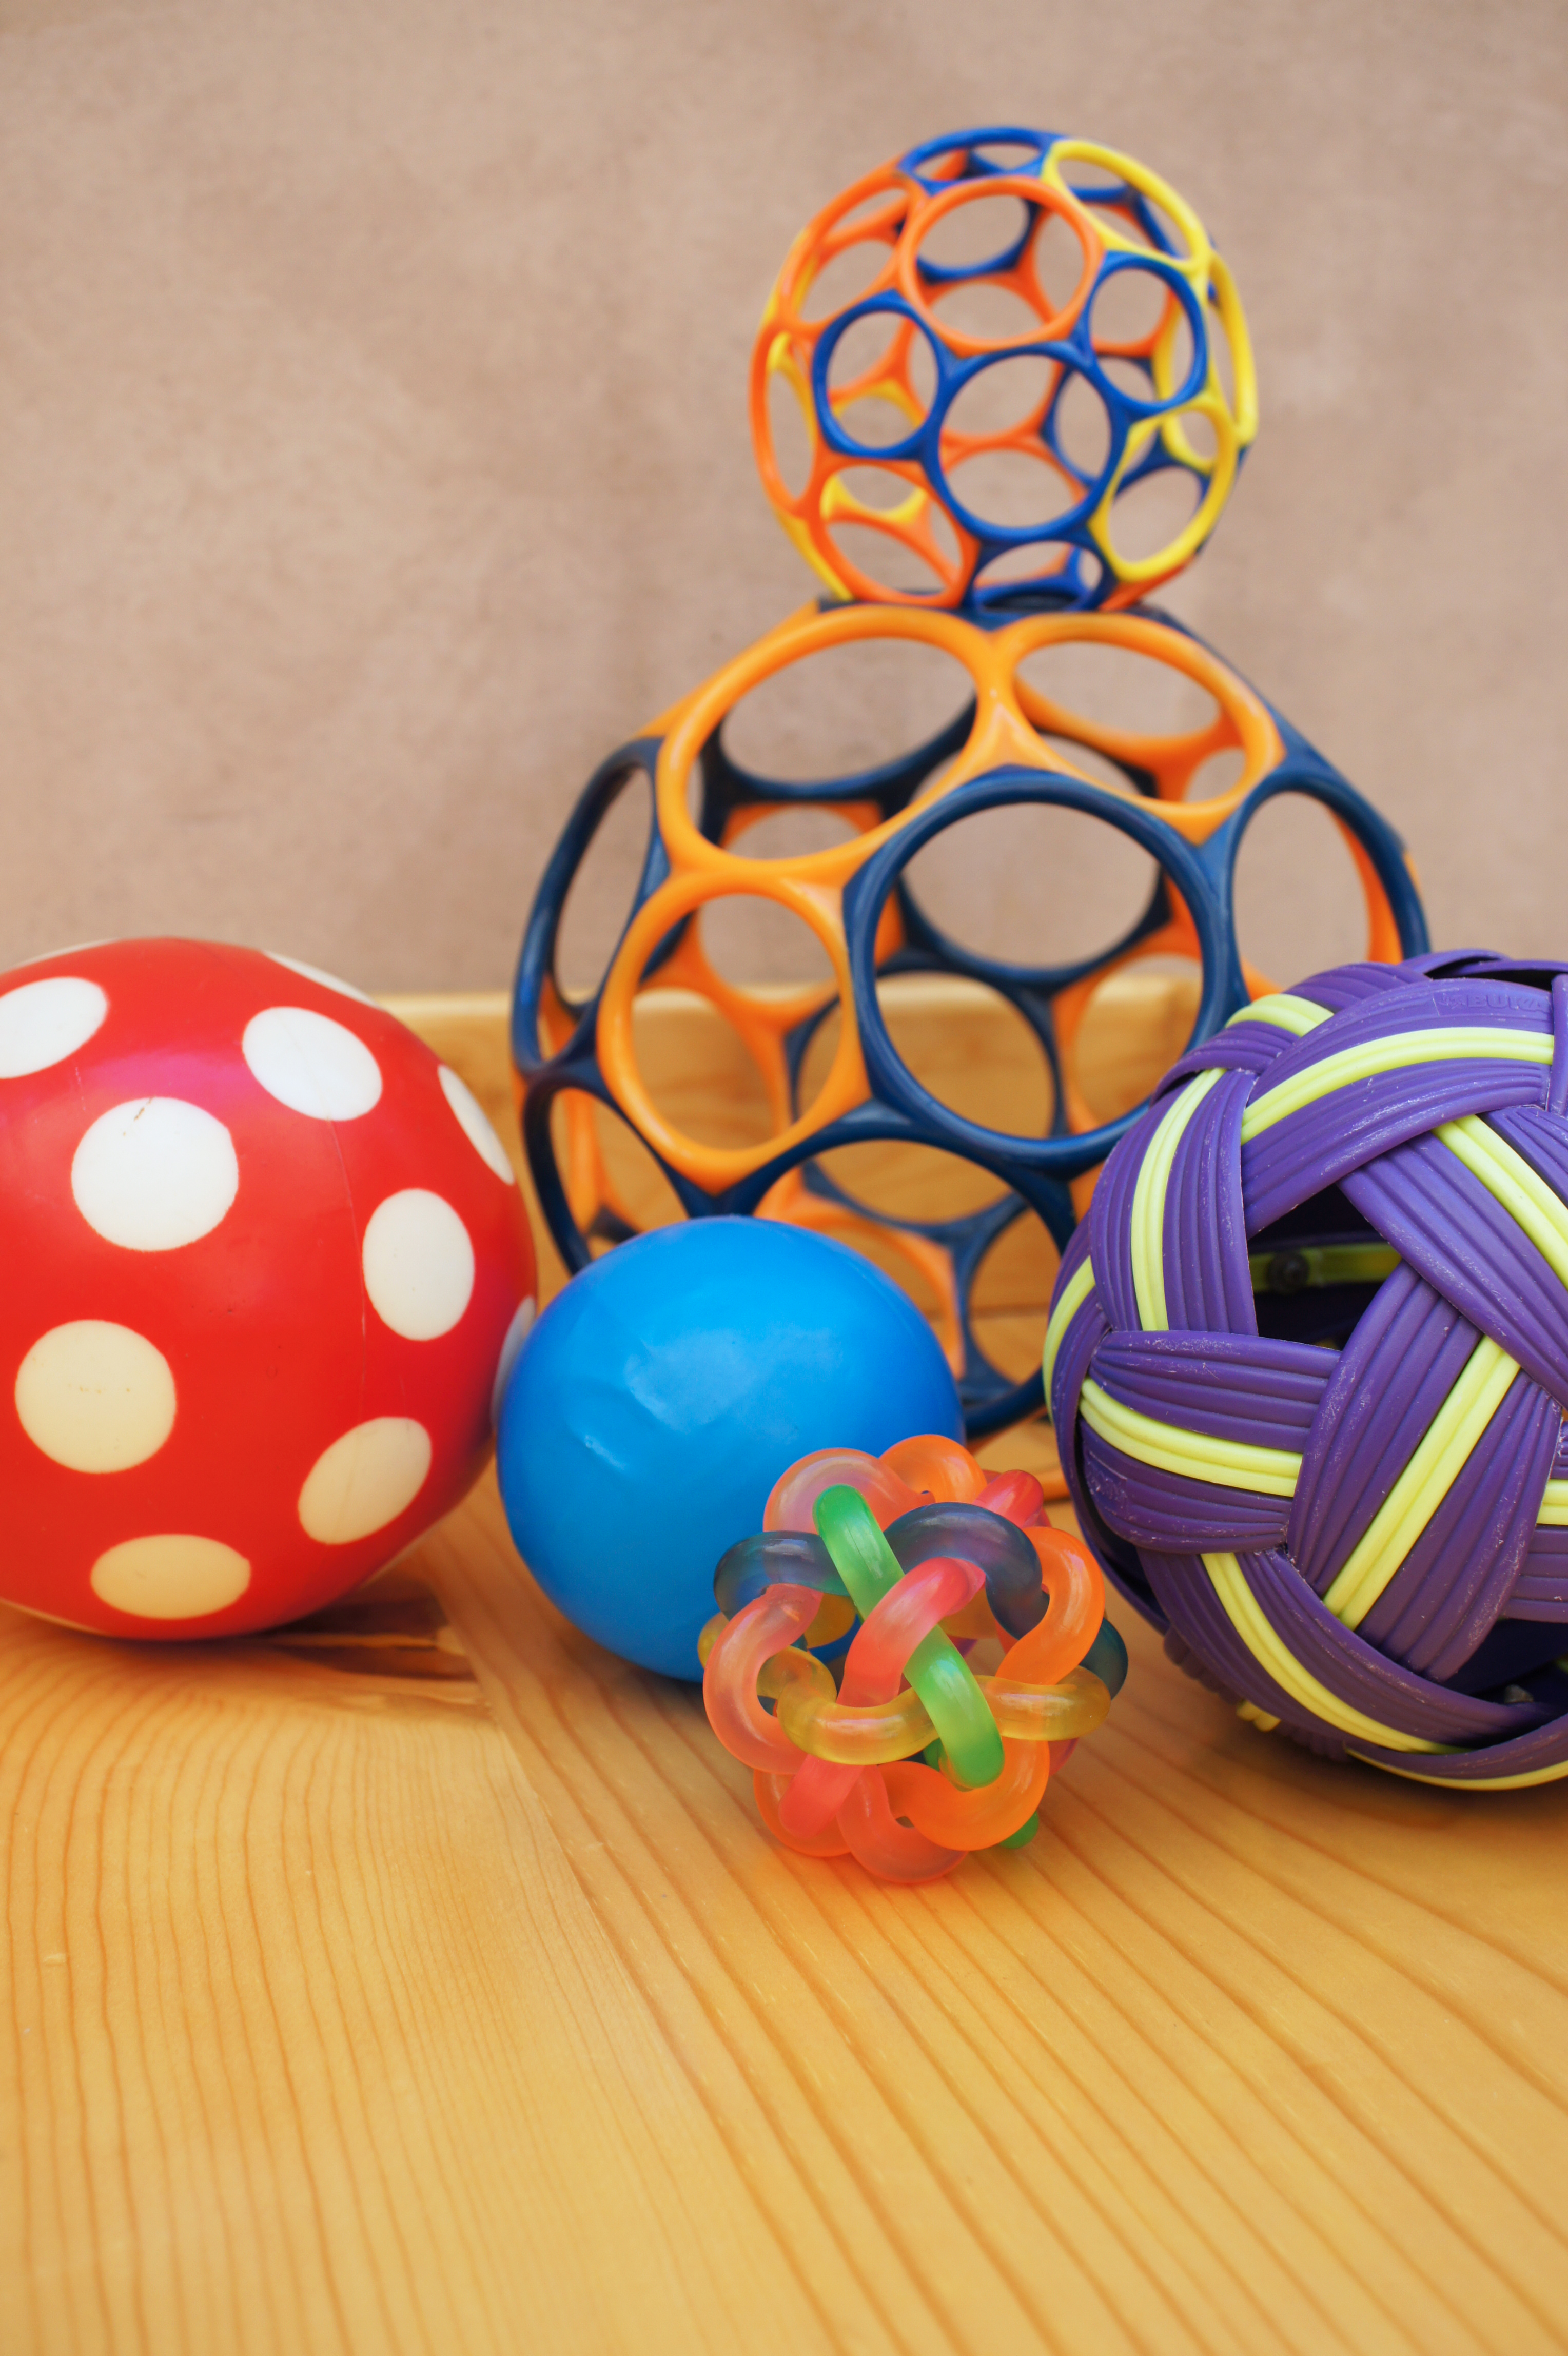 An assortment of balls